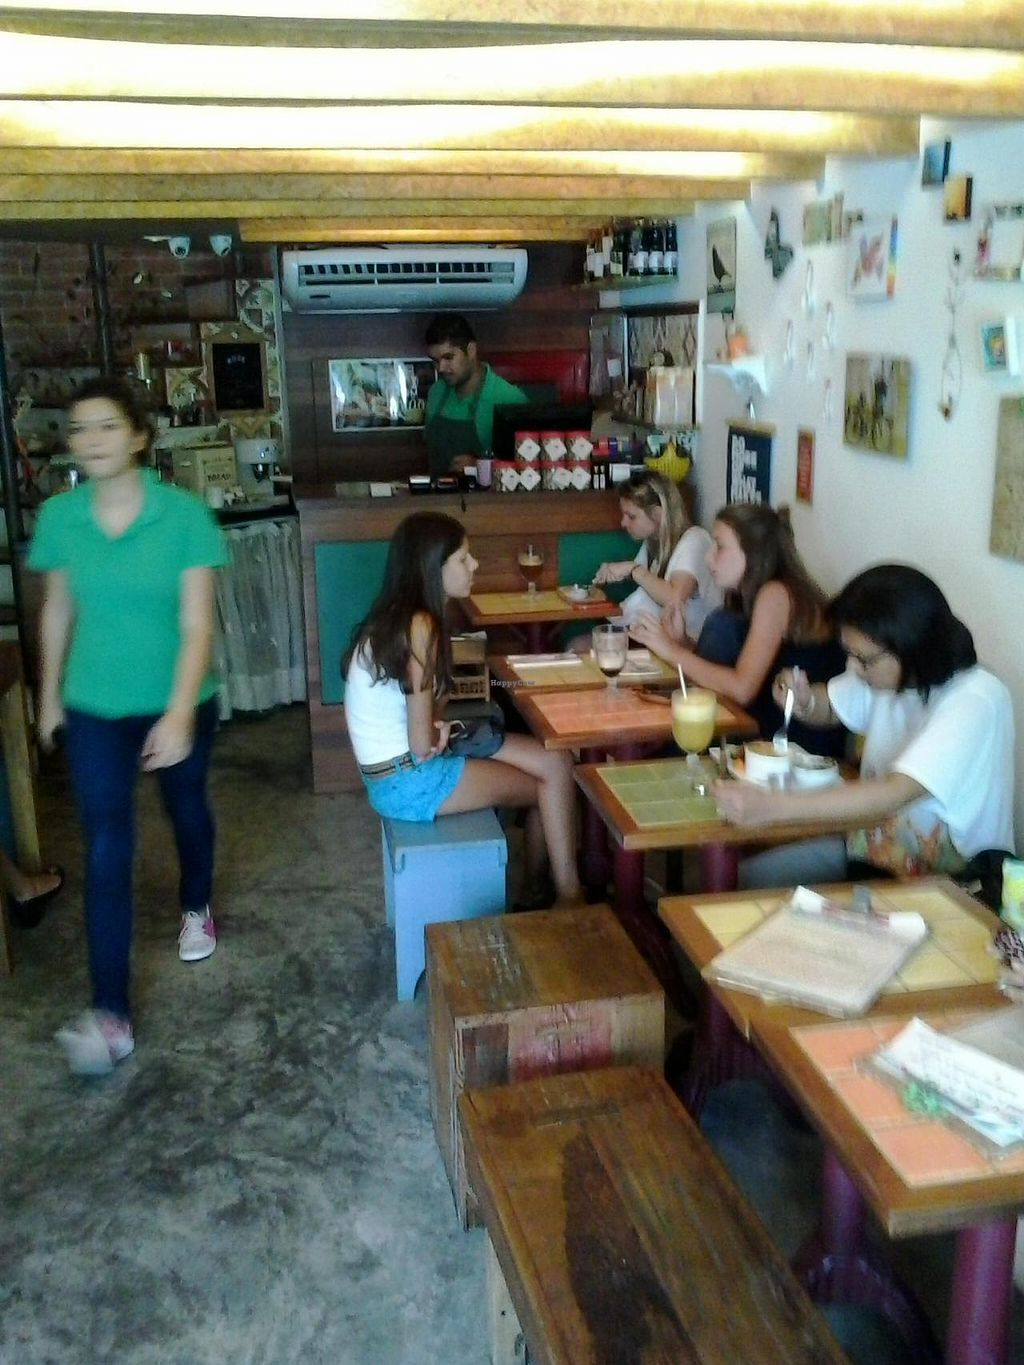 """Photo of Org Bistro  by <a href=""""/members/profile/laranjatomate"""">laranjatomate</a> <br/>First floor (at street level) <br/> March 19, 2015  - <a href='/contact/abuse/image/53158/96198'>Report</a>"""